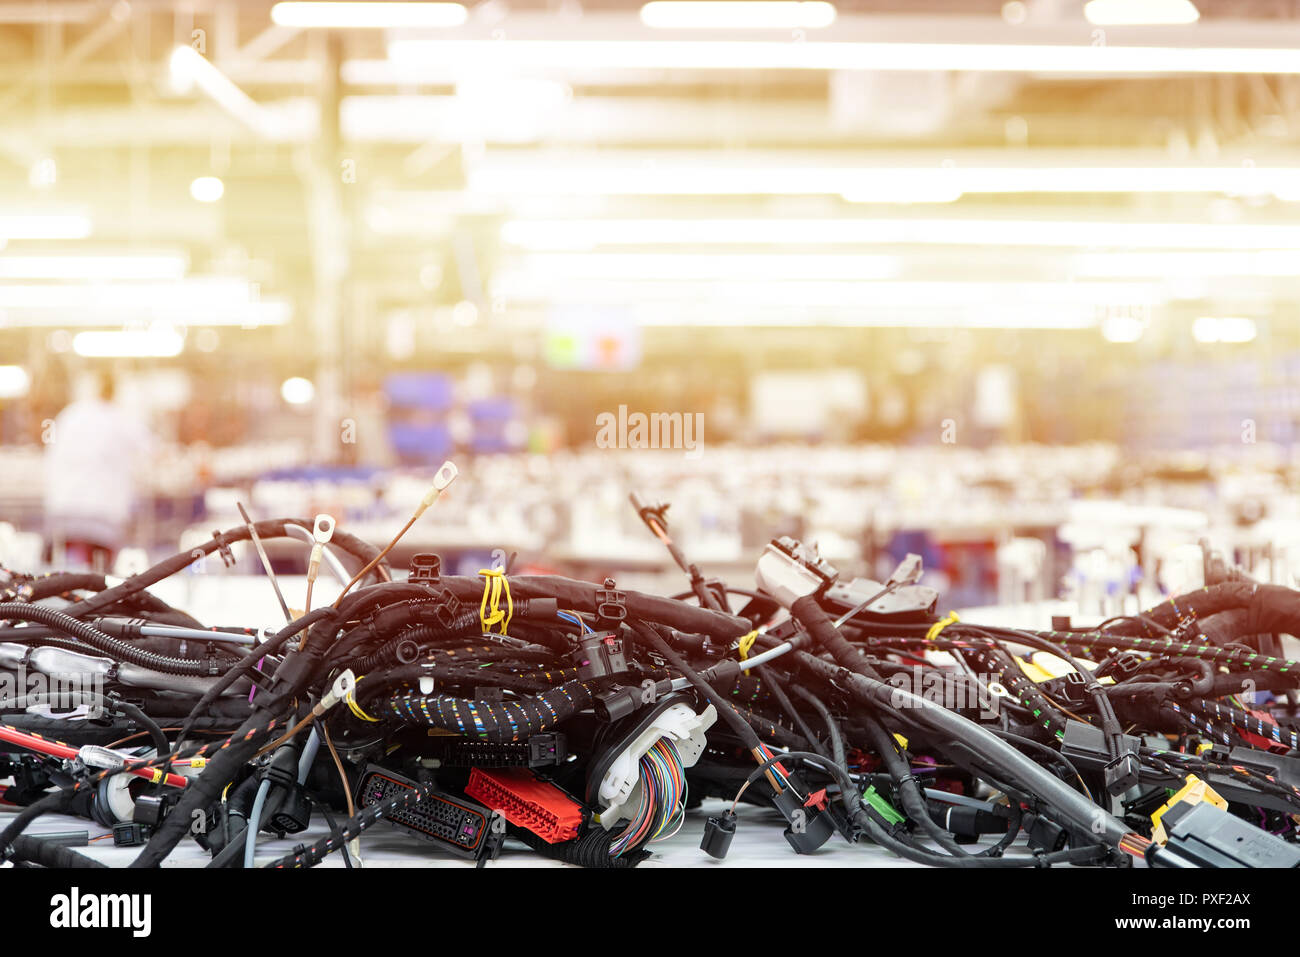 Manufacturing of wiring harnesses, automotive industry, technology Stock Photo